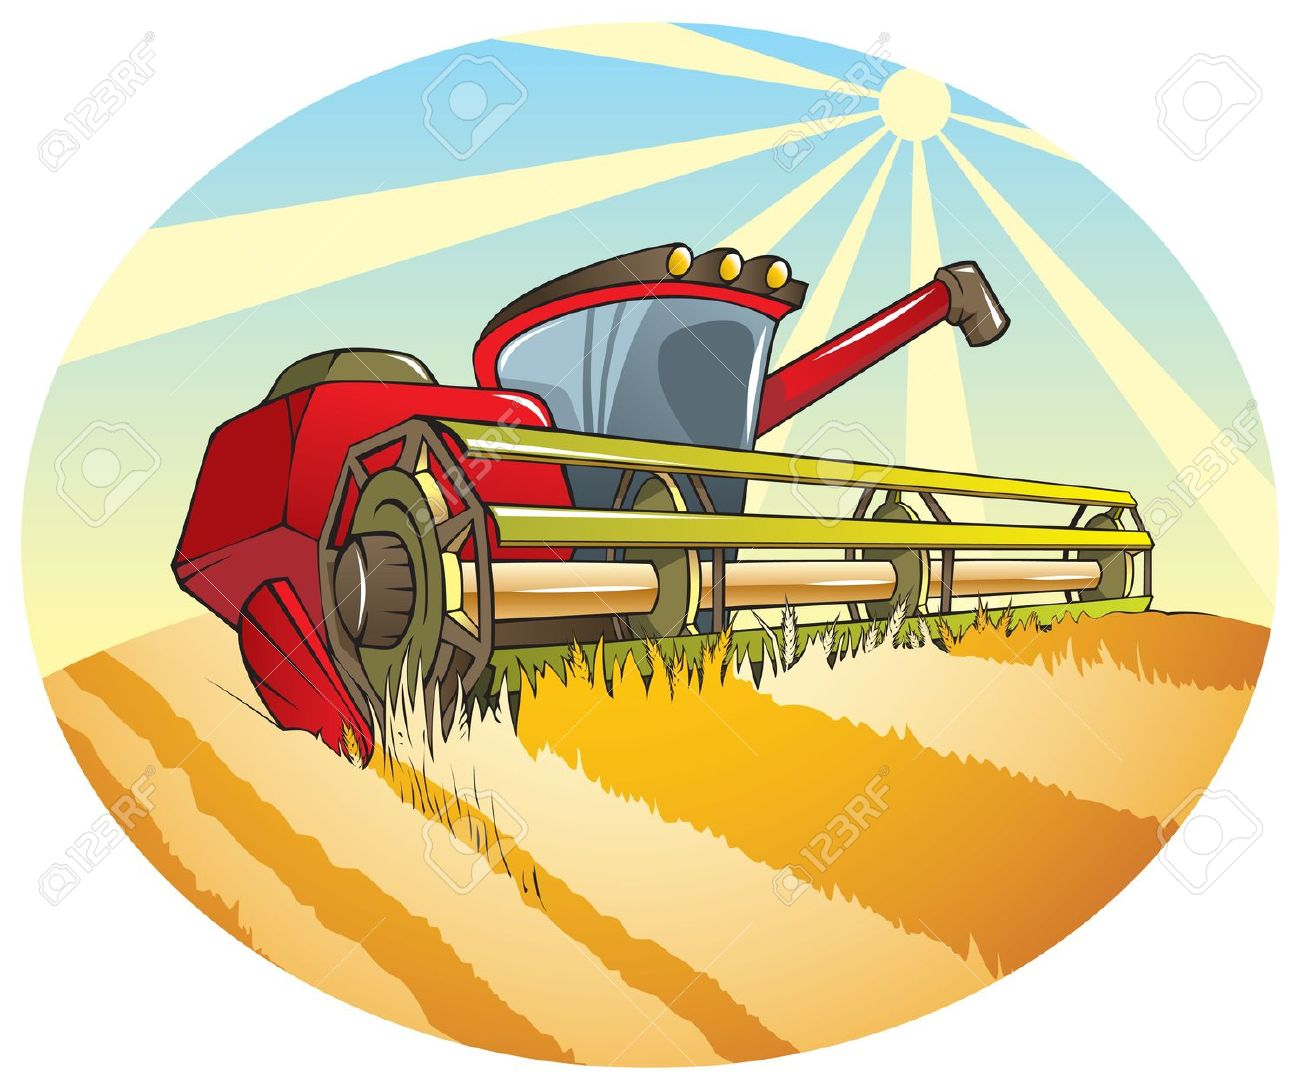 Agricultural machinery clipart #8